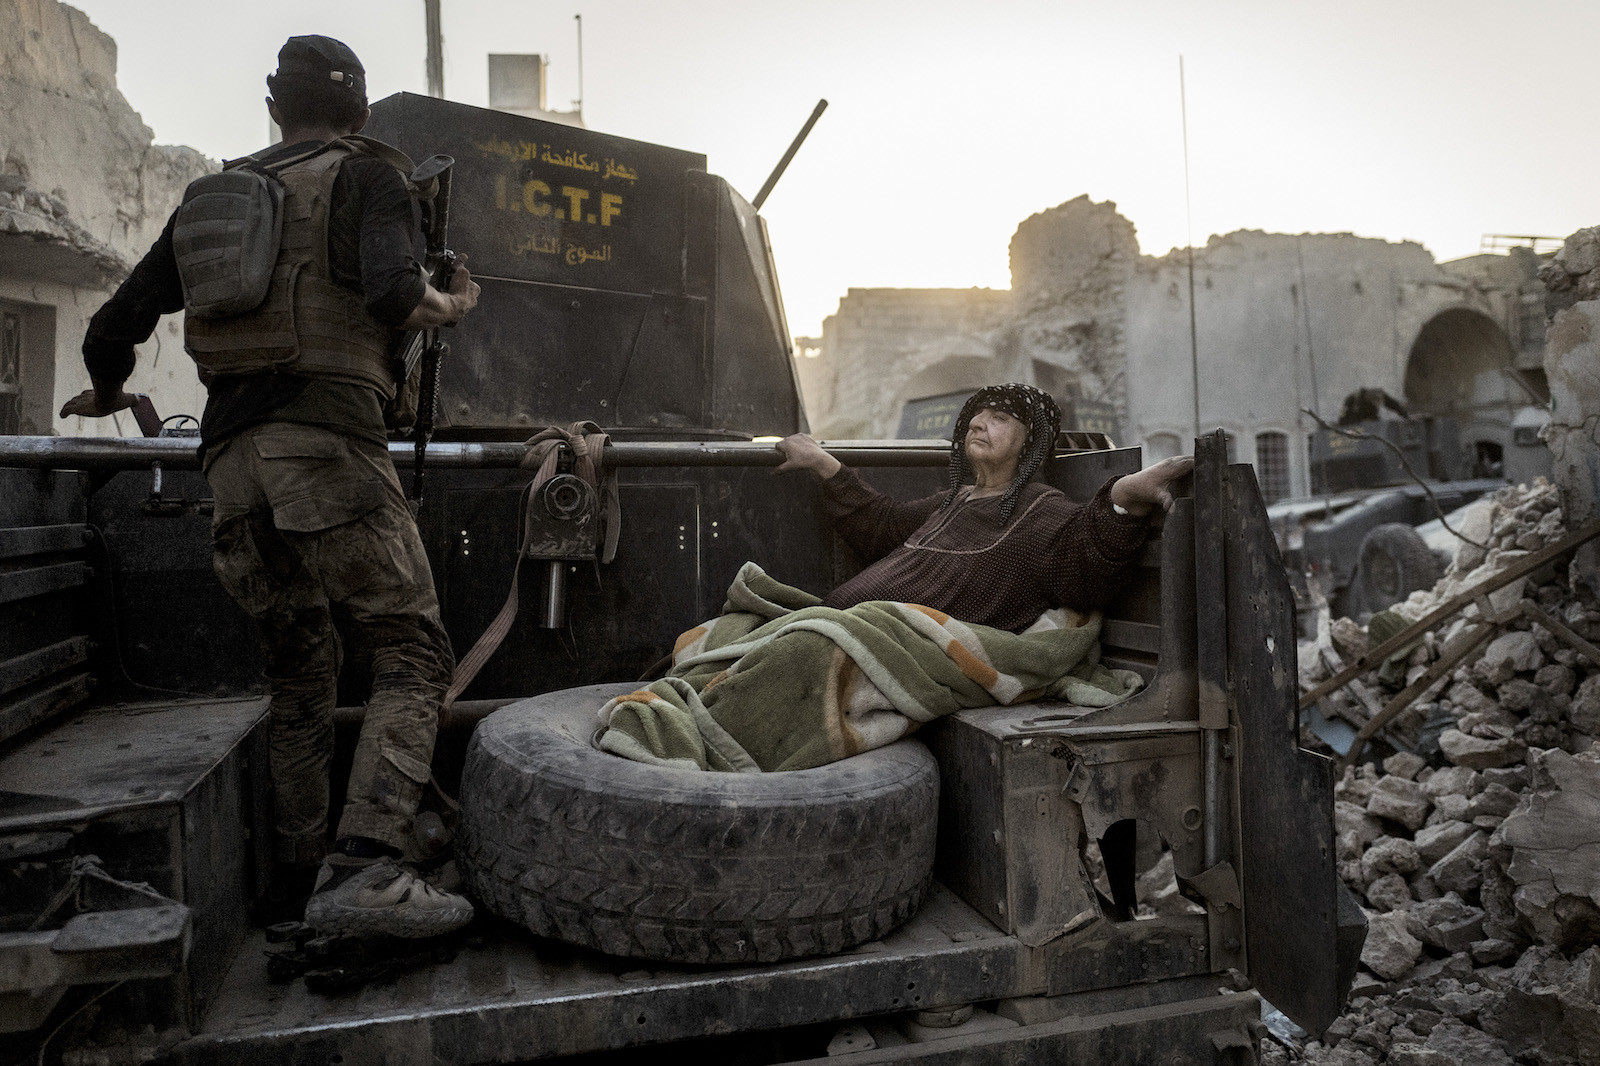 An elderly woman is driven through the city on the back of one of Golden Division's Humvees. The temperature is nearly 50 degrees celcius, and she's too weak to get away from the frontline on her own. 11 days later - 10. July 2017 - the Iraqi prime minister, Haider al-Abadi, declares Mosul liberated, although fighting continues in the city for a couple of weeks.